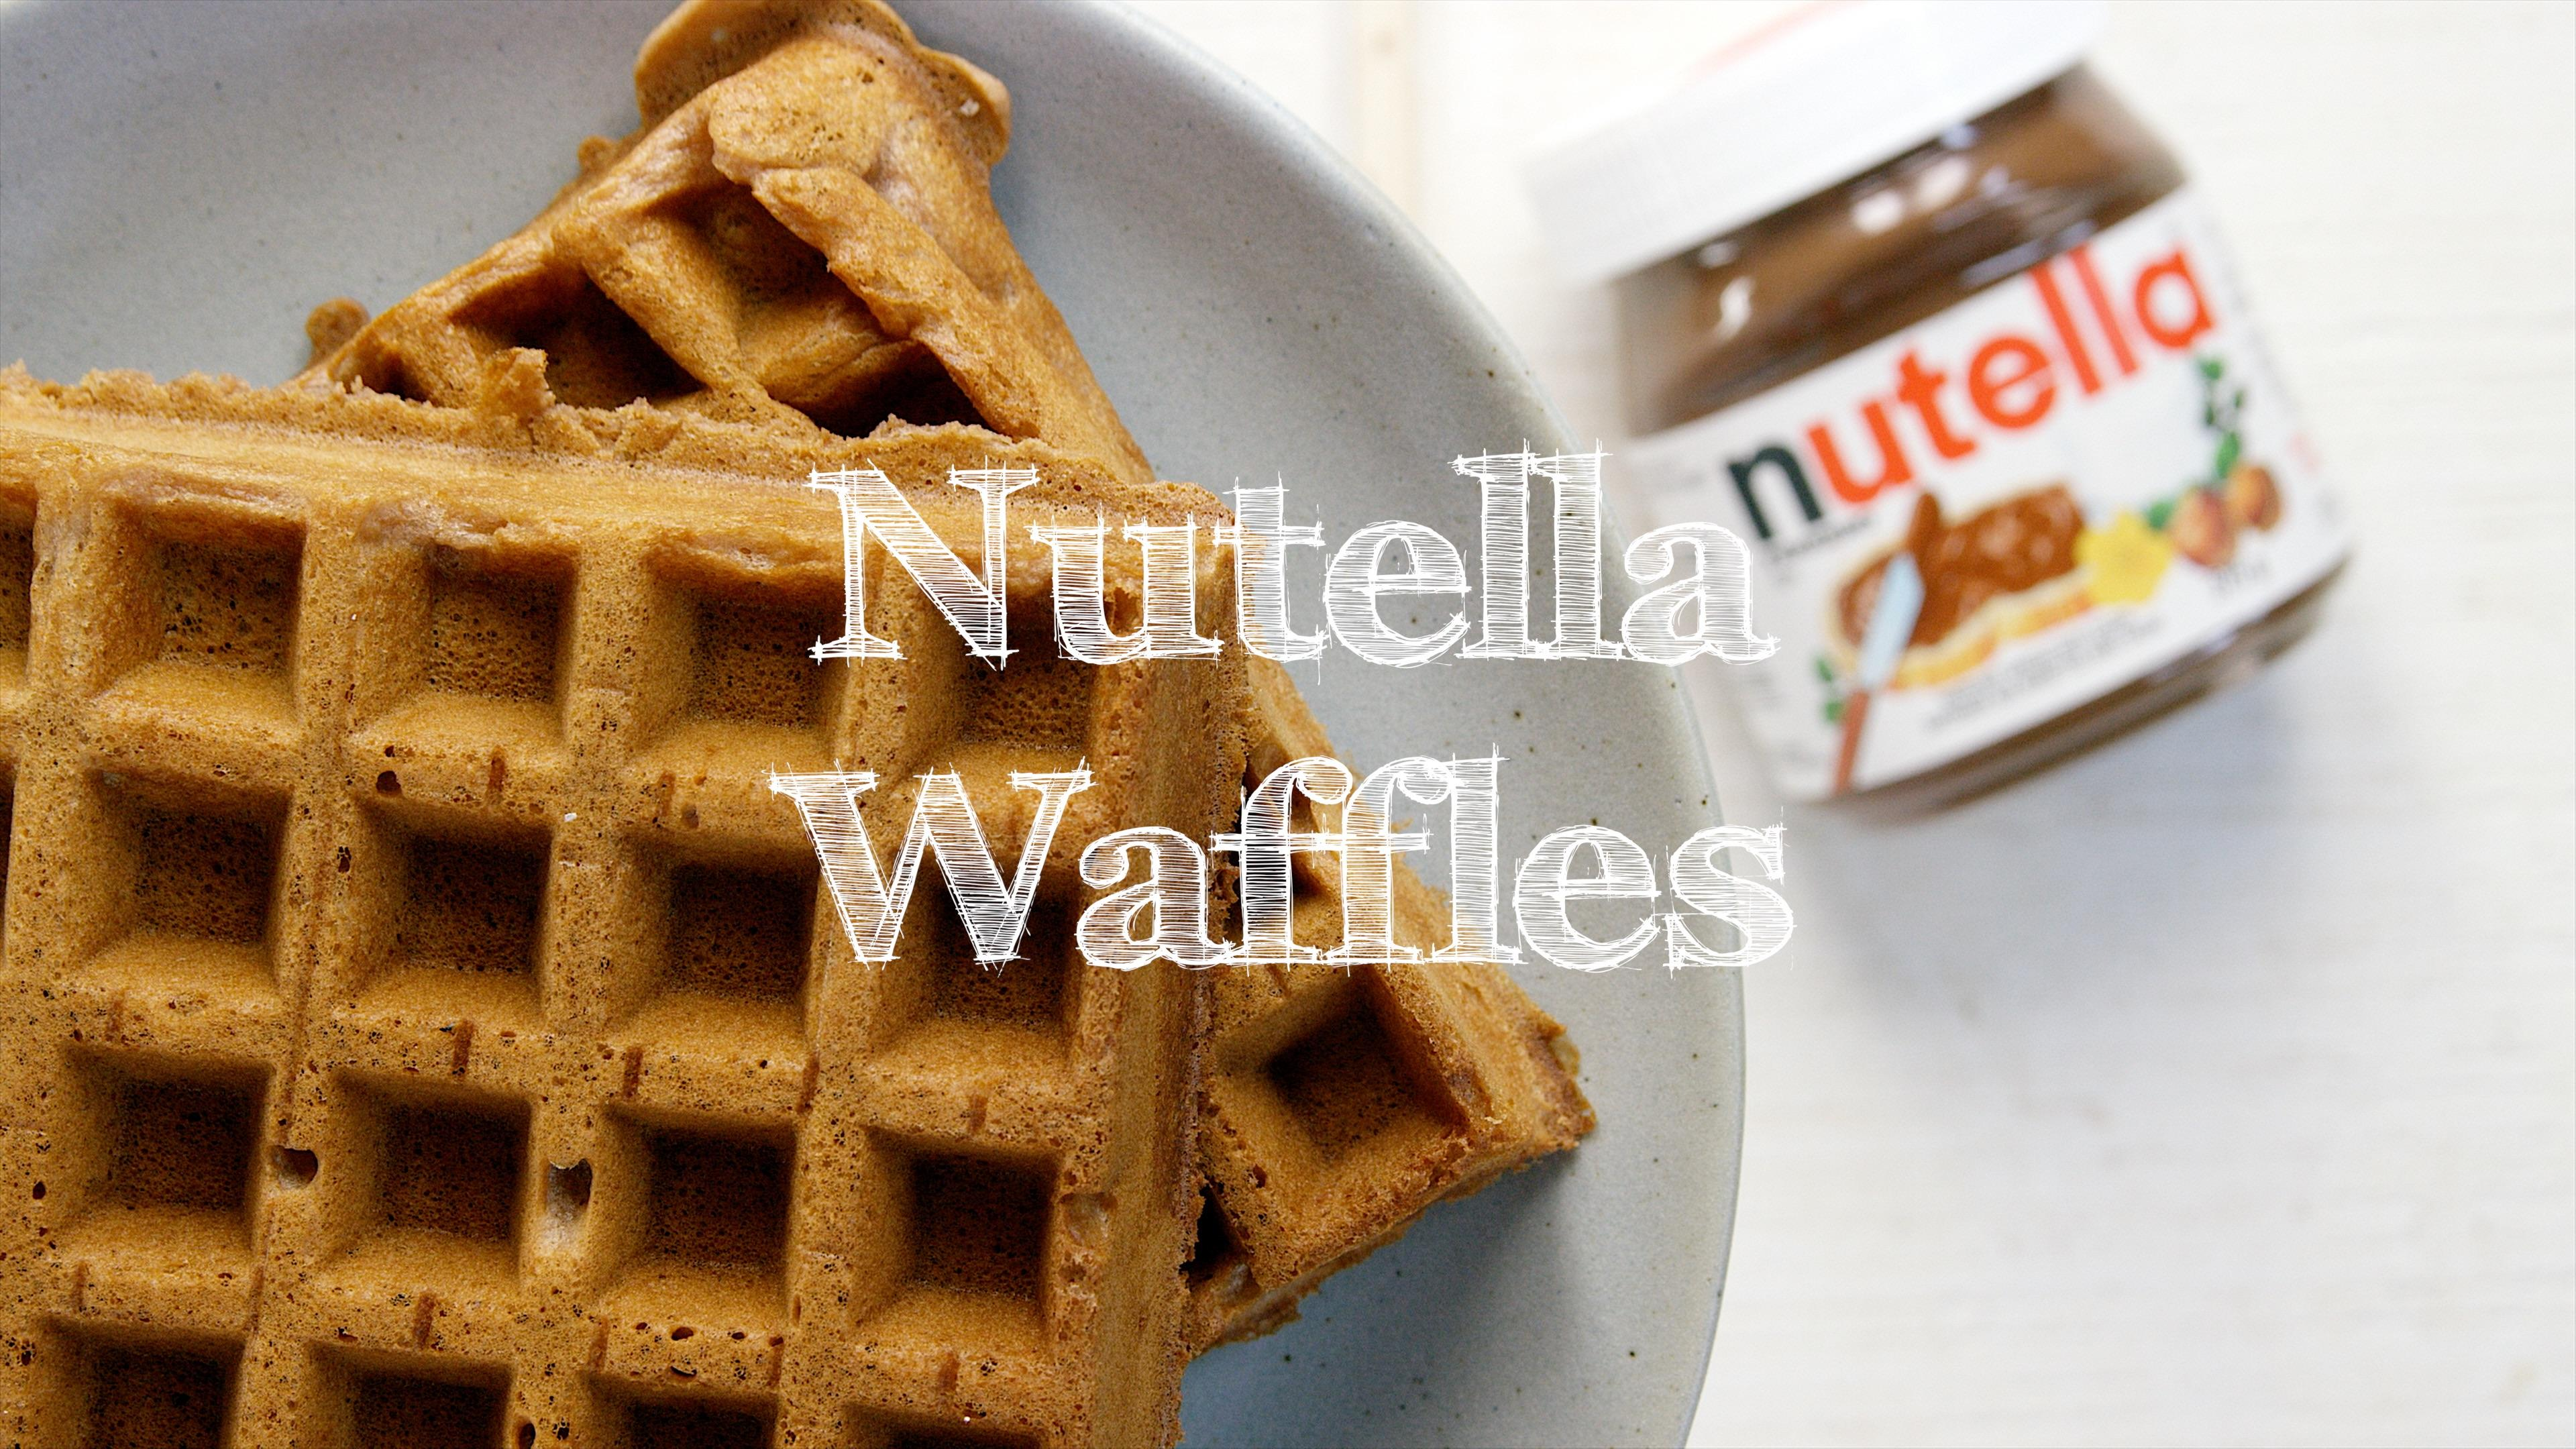 The Waffle Recipes You Want And Need | HuffPost Life